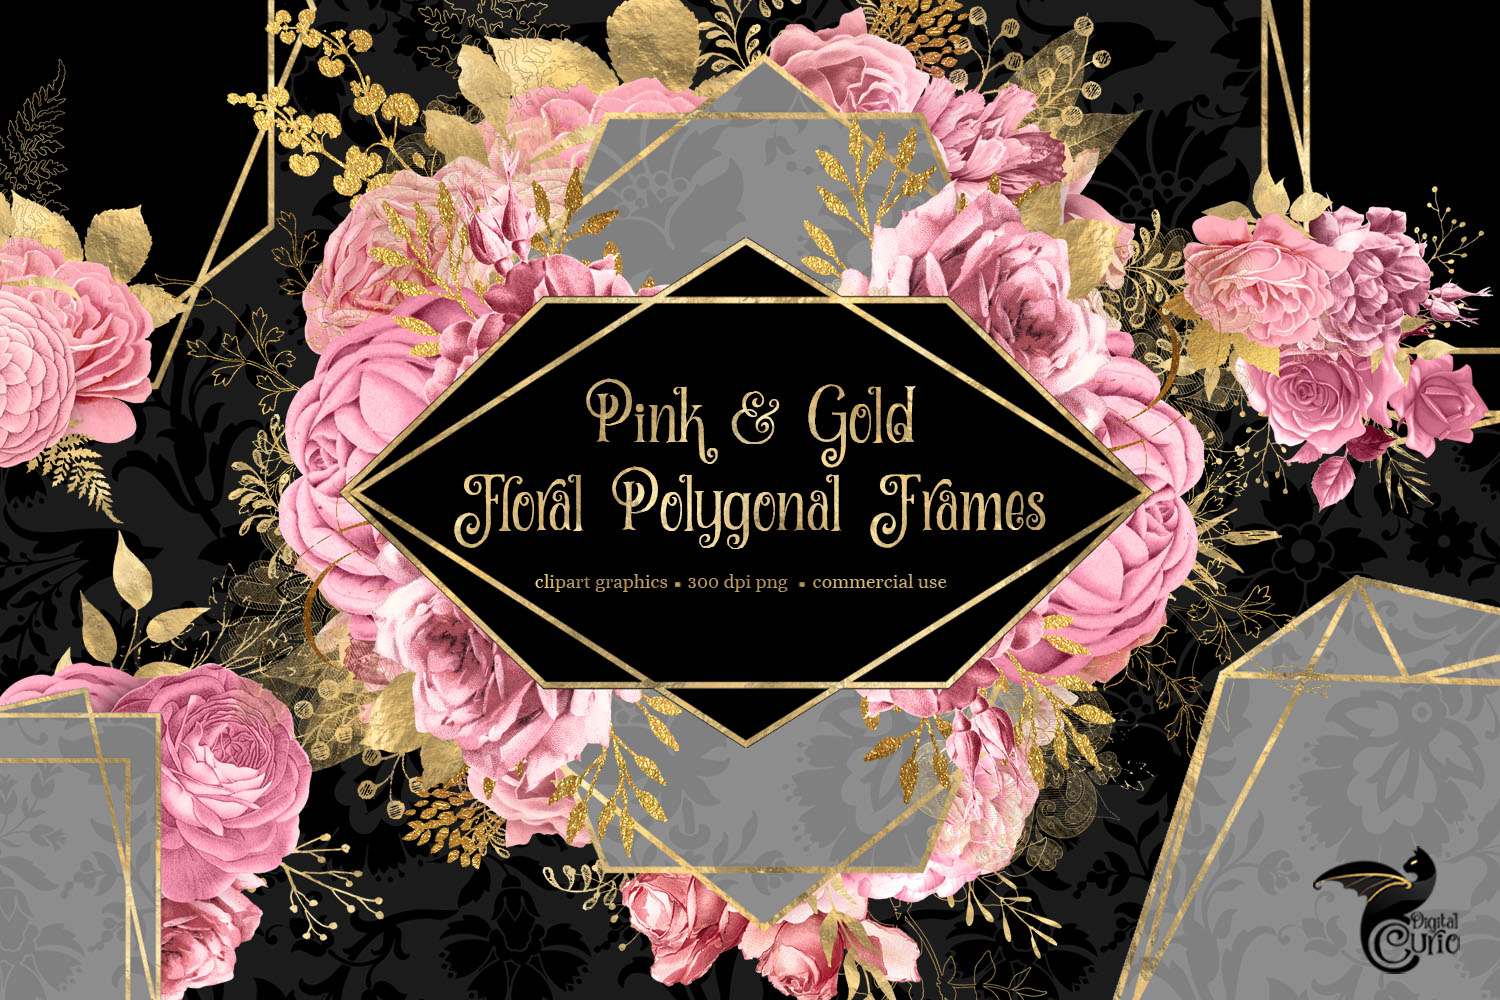 Pink and Gold Floral Polygonal Frames Clipart example image 2